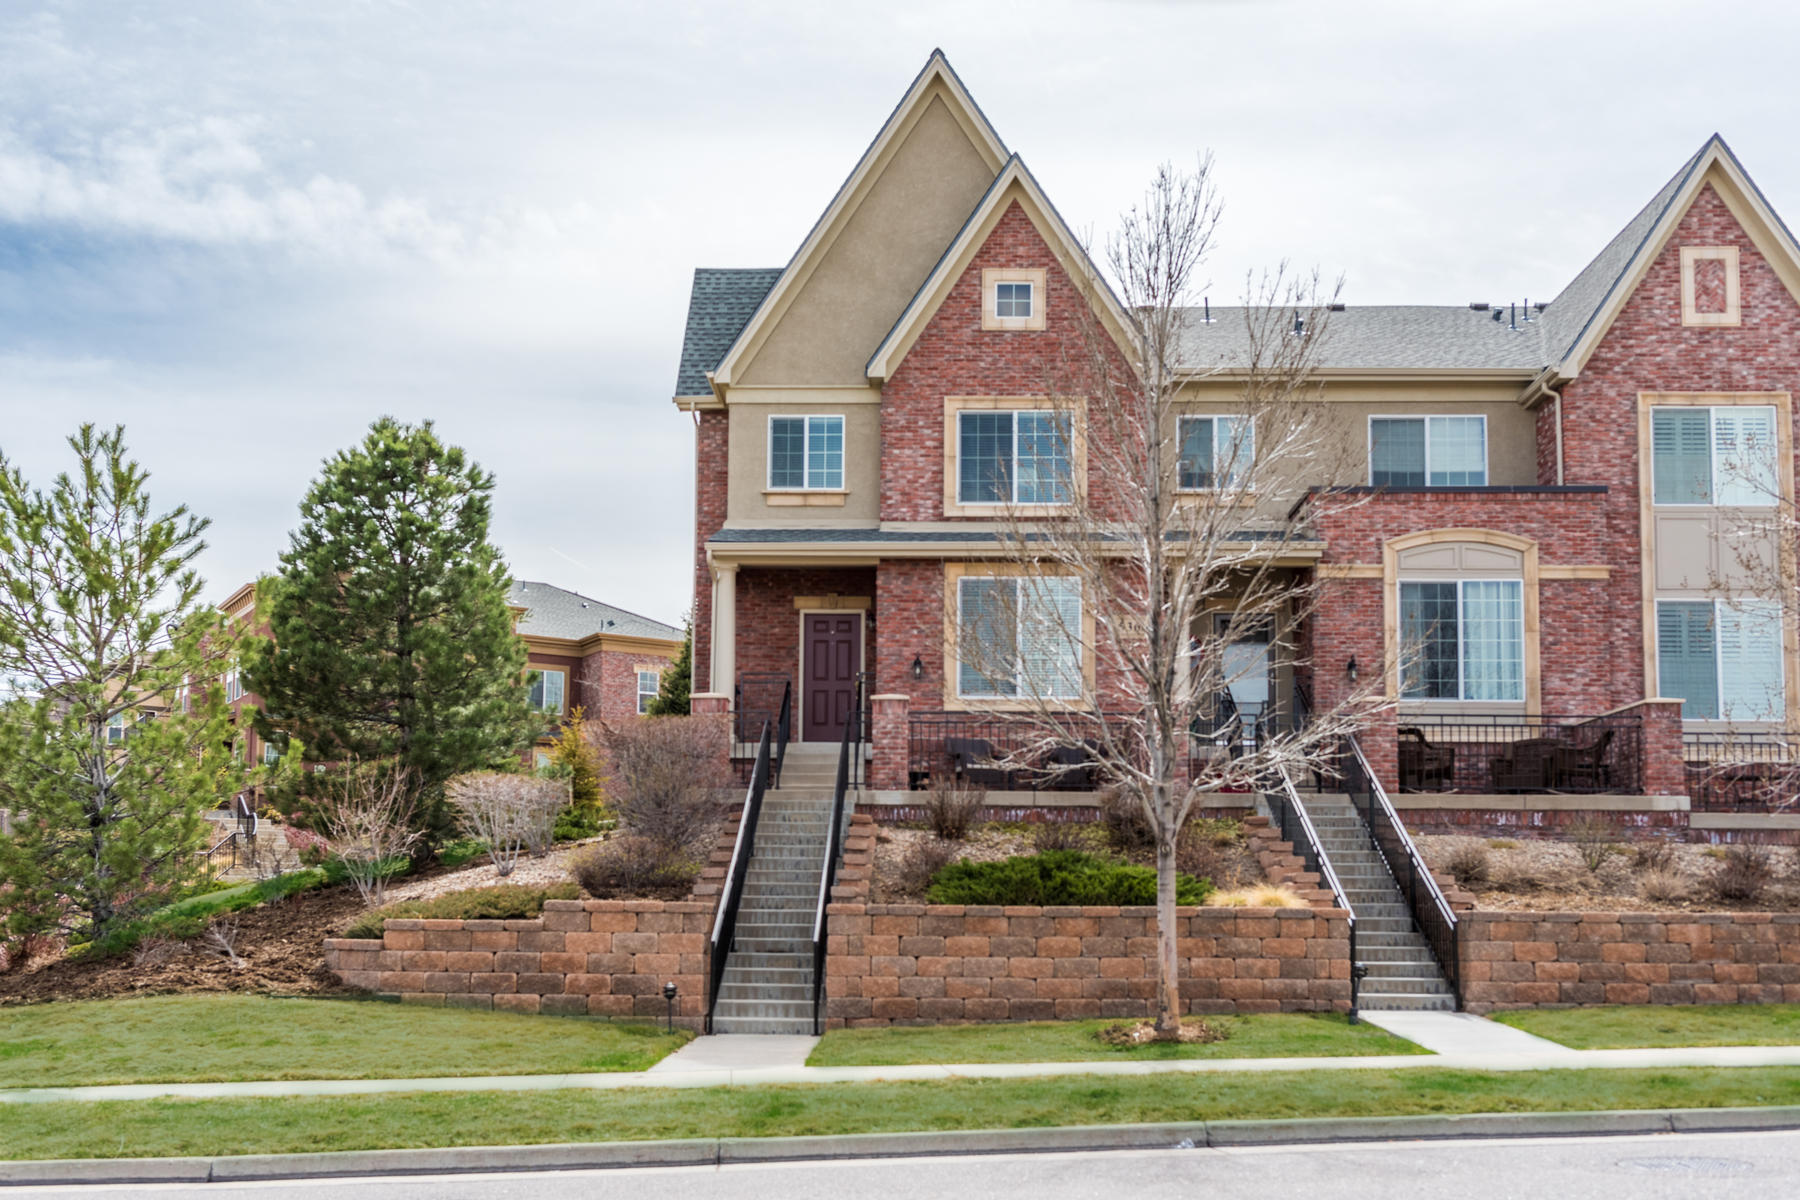 Single Family Home for Active at A beautifully appointed end unit with the perfect location! 536 Green Ash St #F Highlands Ranch, Colorado 80129 United States